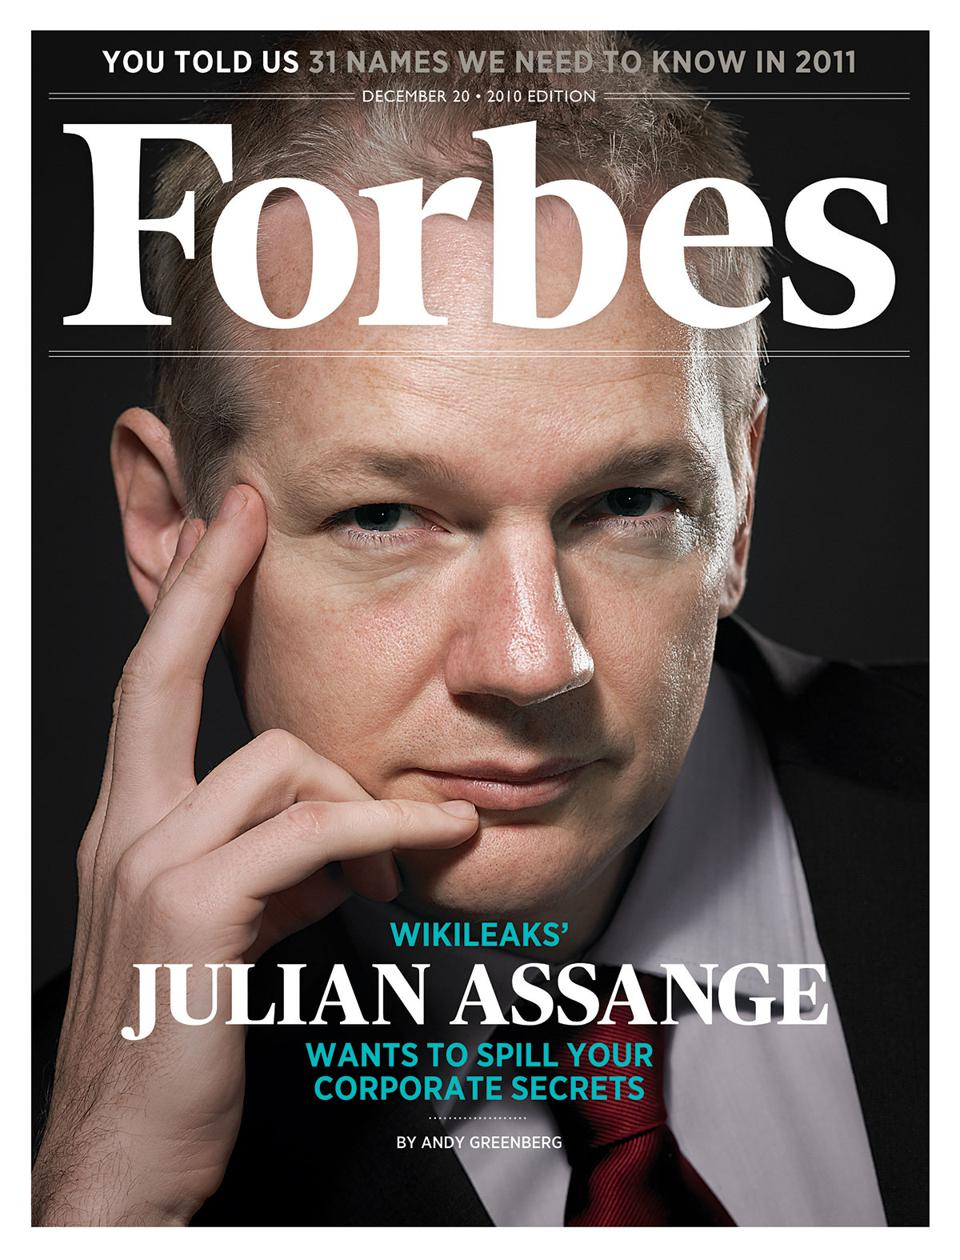 Julian Assange, cover star of Forbes December 2010 edition